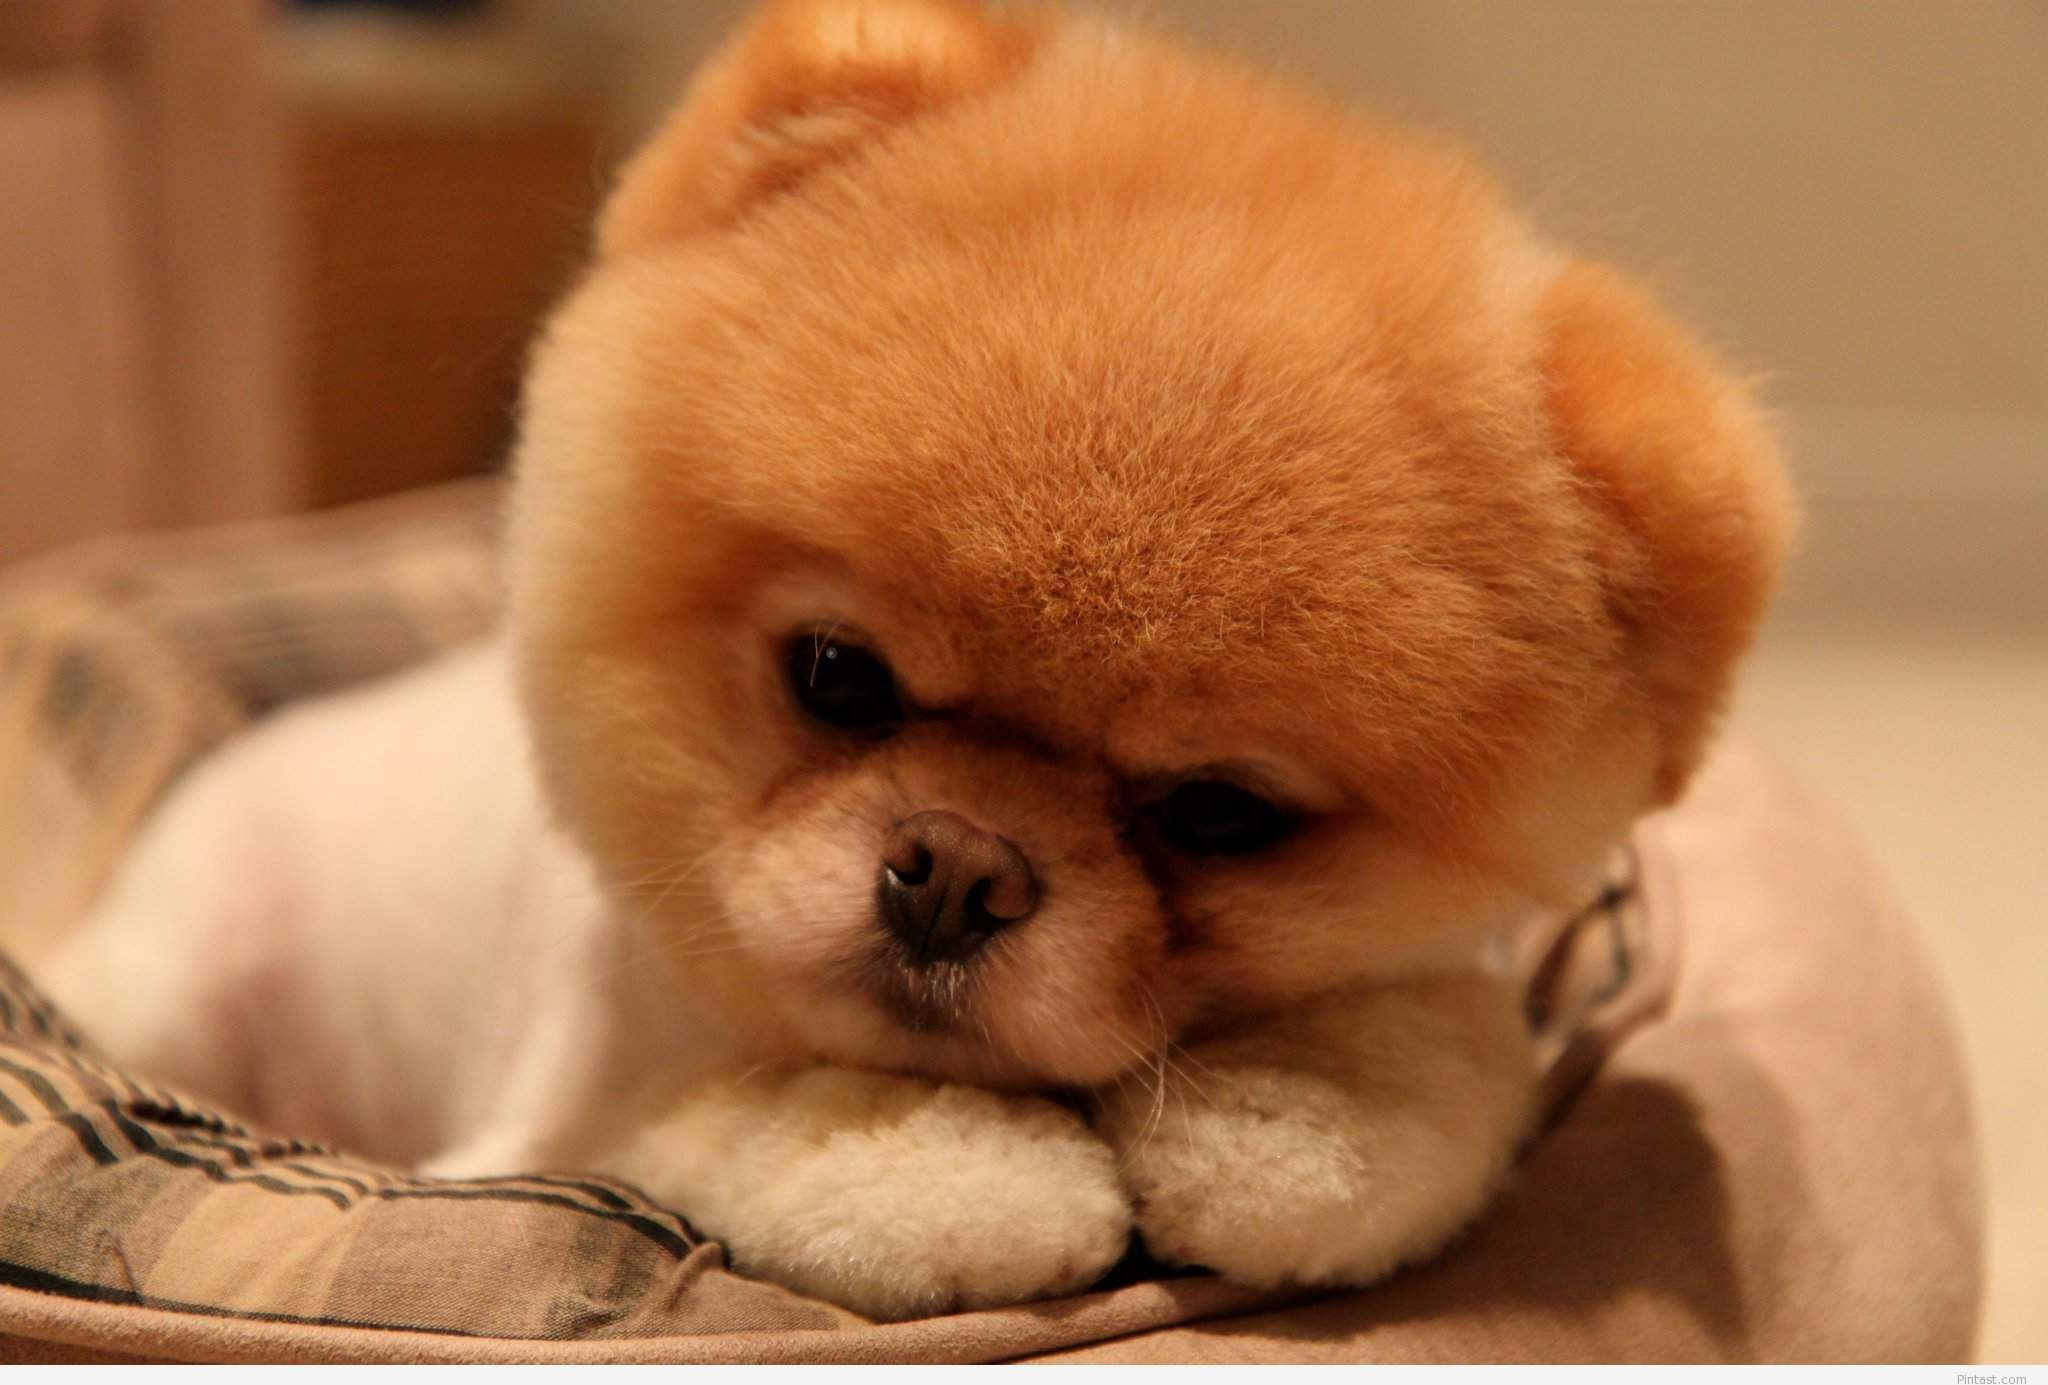 Pin By Cool Wallpapers On Cute Animals Boo The Dog Cute Baby Dogs Baby Dogs